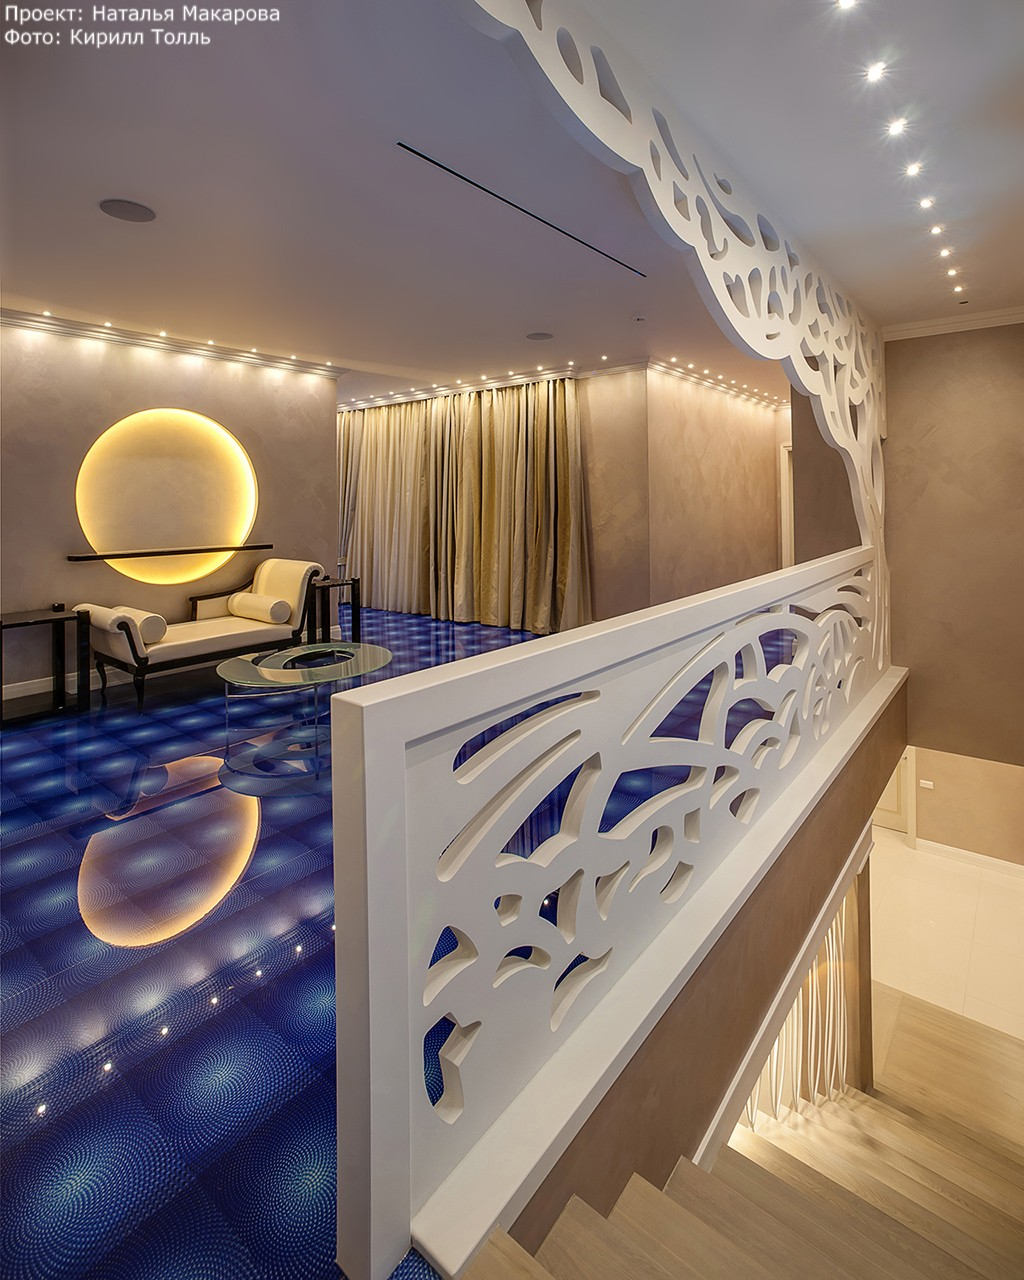 Villa. Part 1. Interior photography of the pool and lounge with bulk floor.